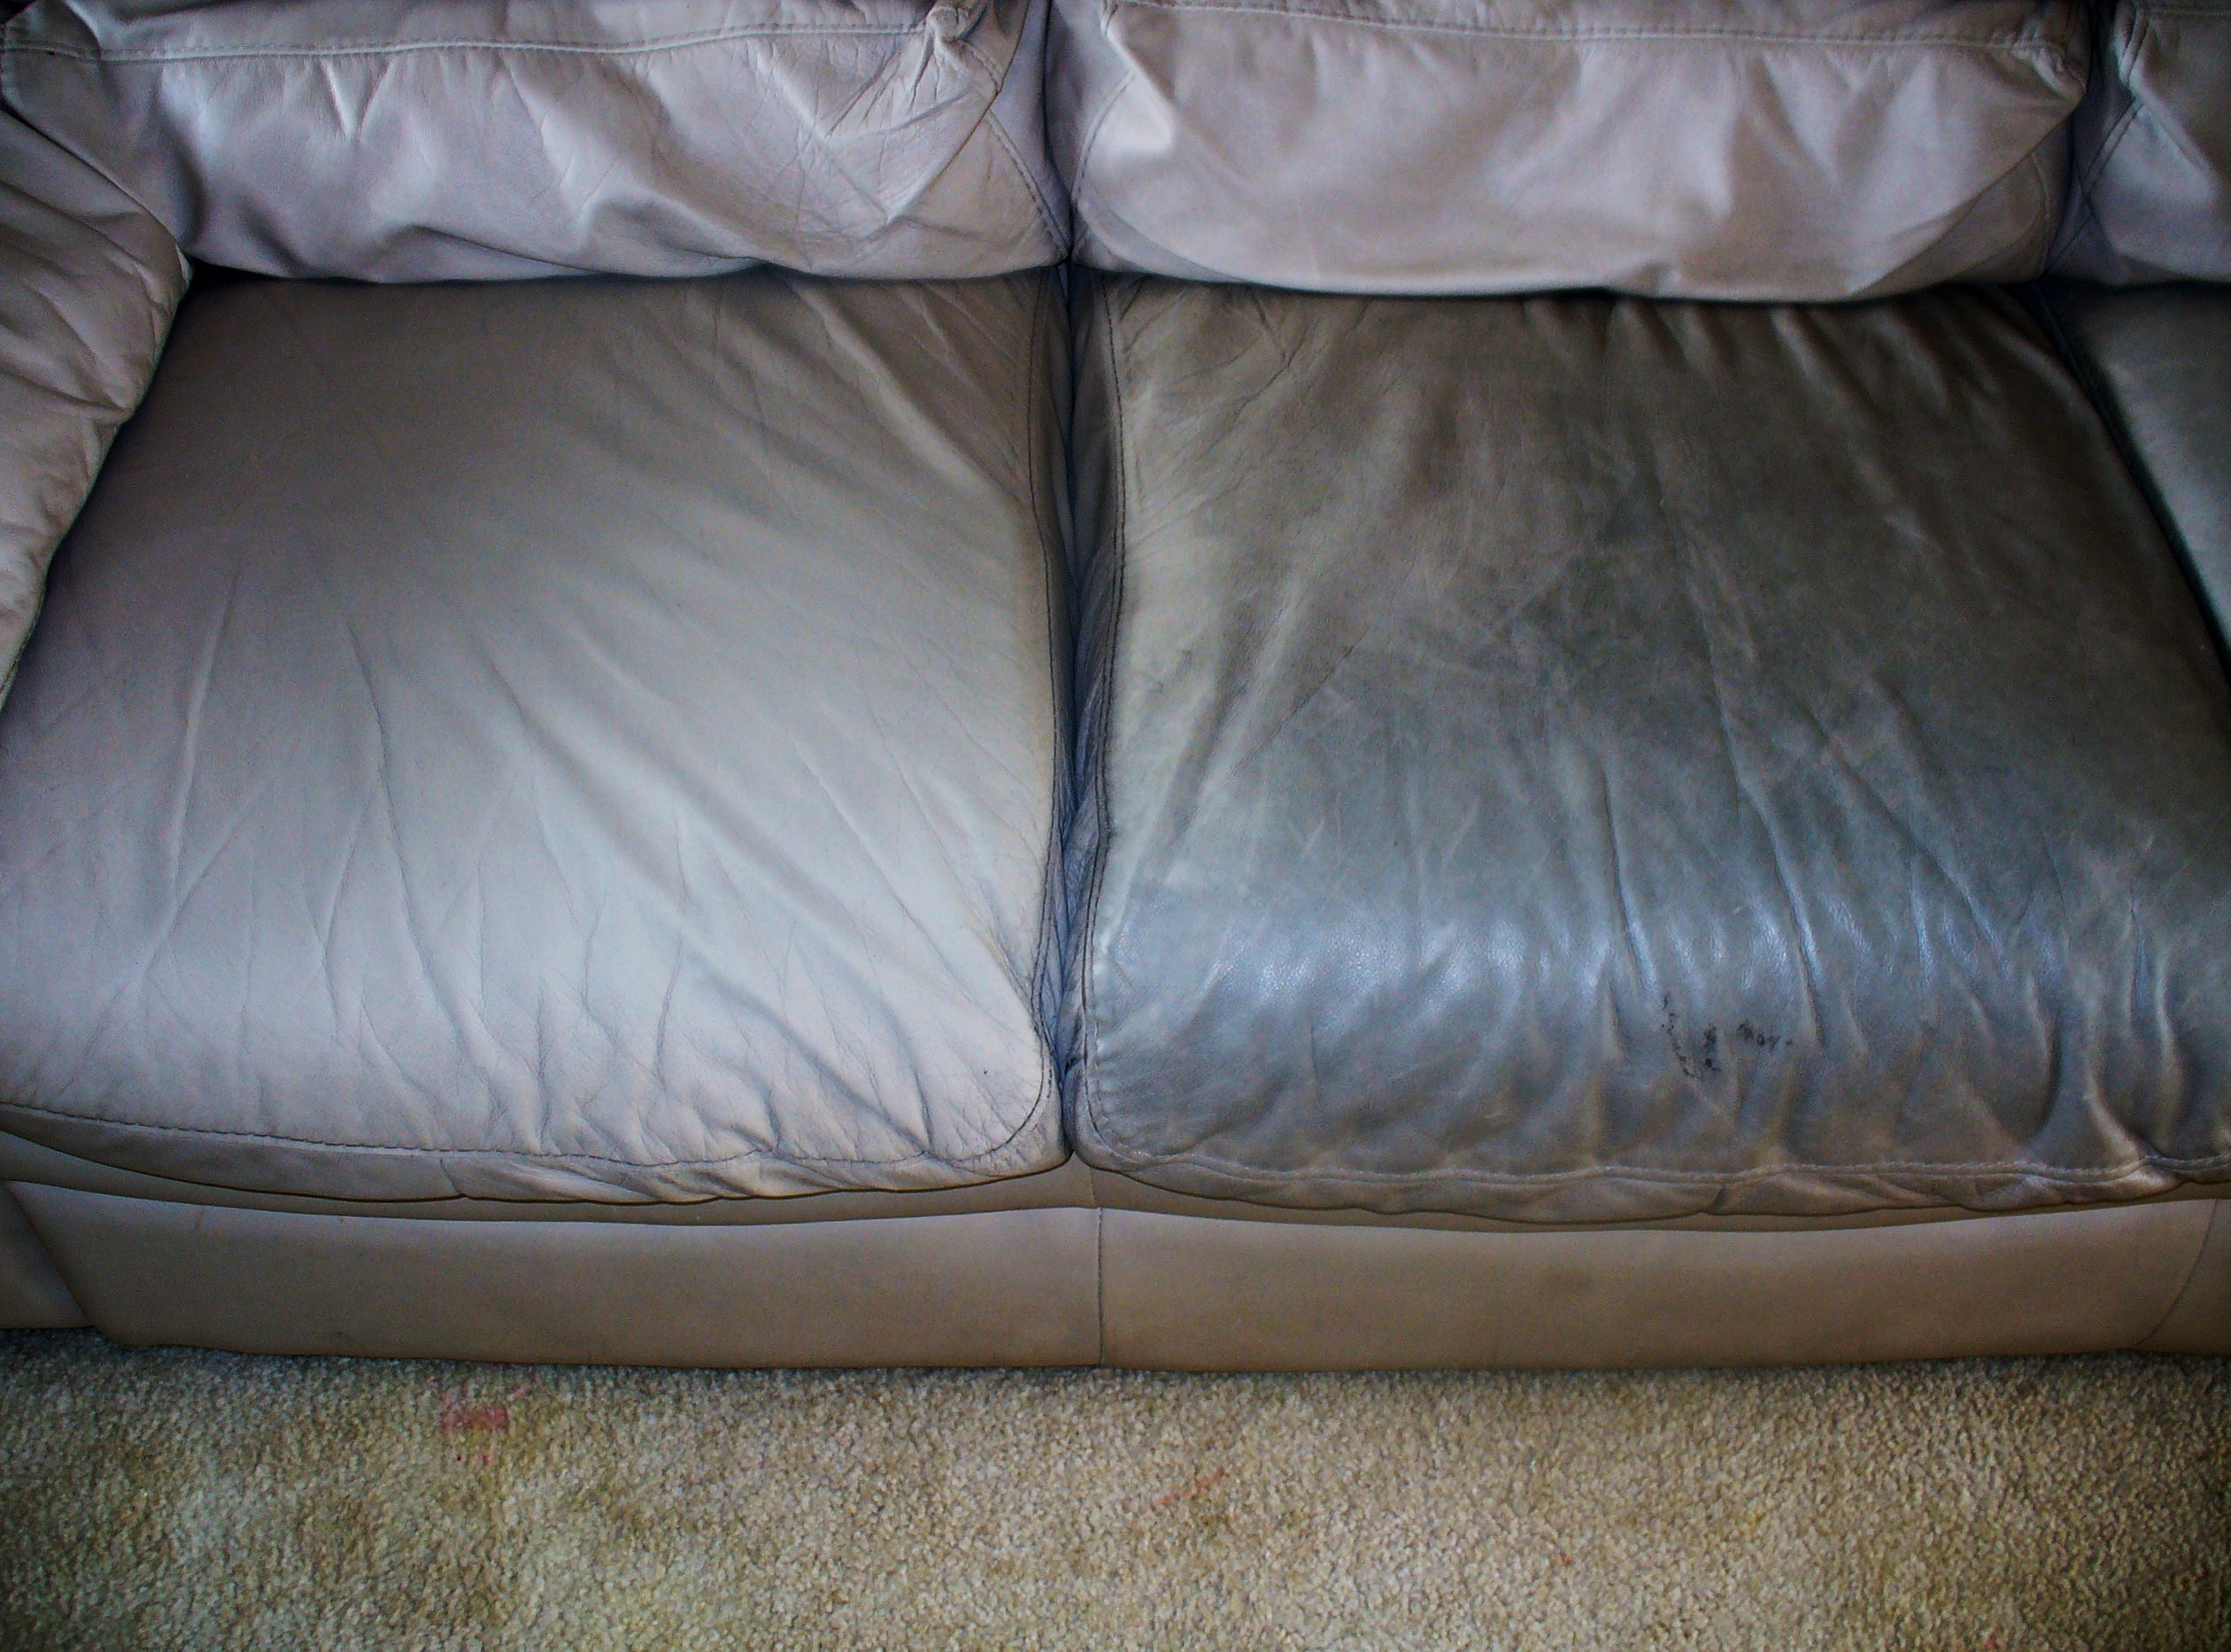 Leather Sofa Dirty versus Leather Sofa Cleaned